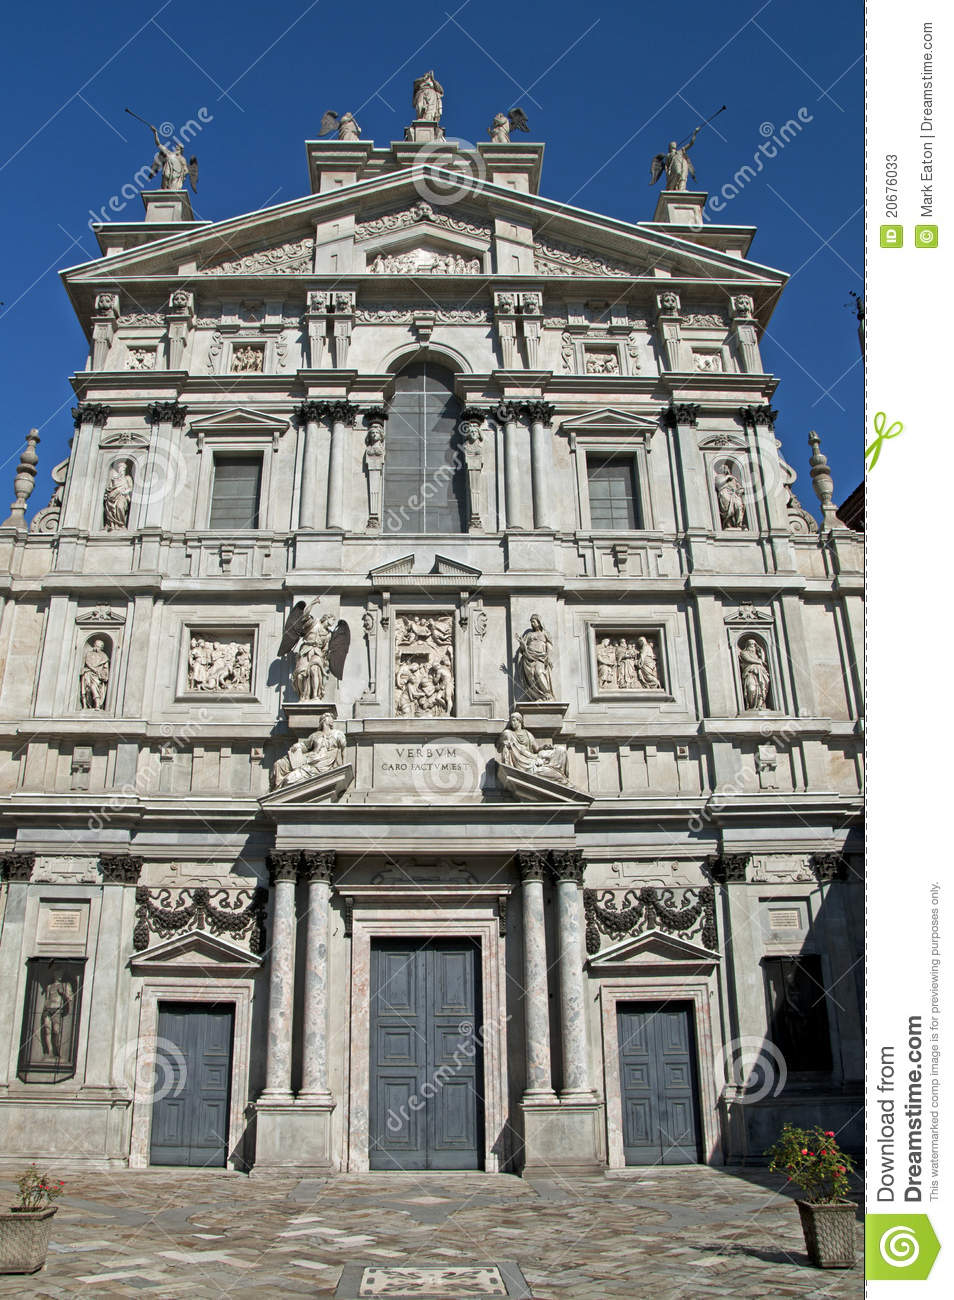 Santa Maria Presso San Celso Stock Photos - Image: 20676033